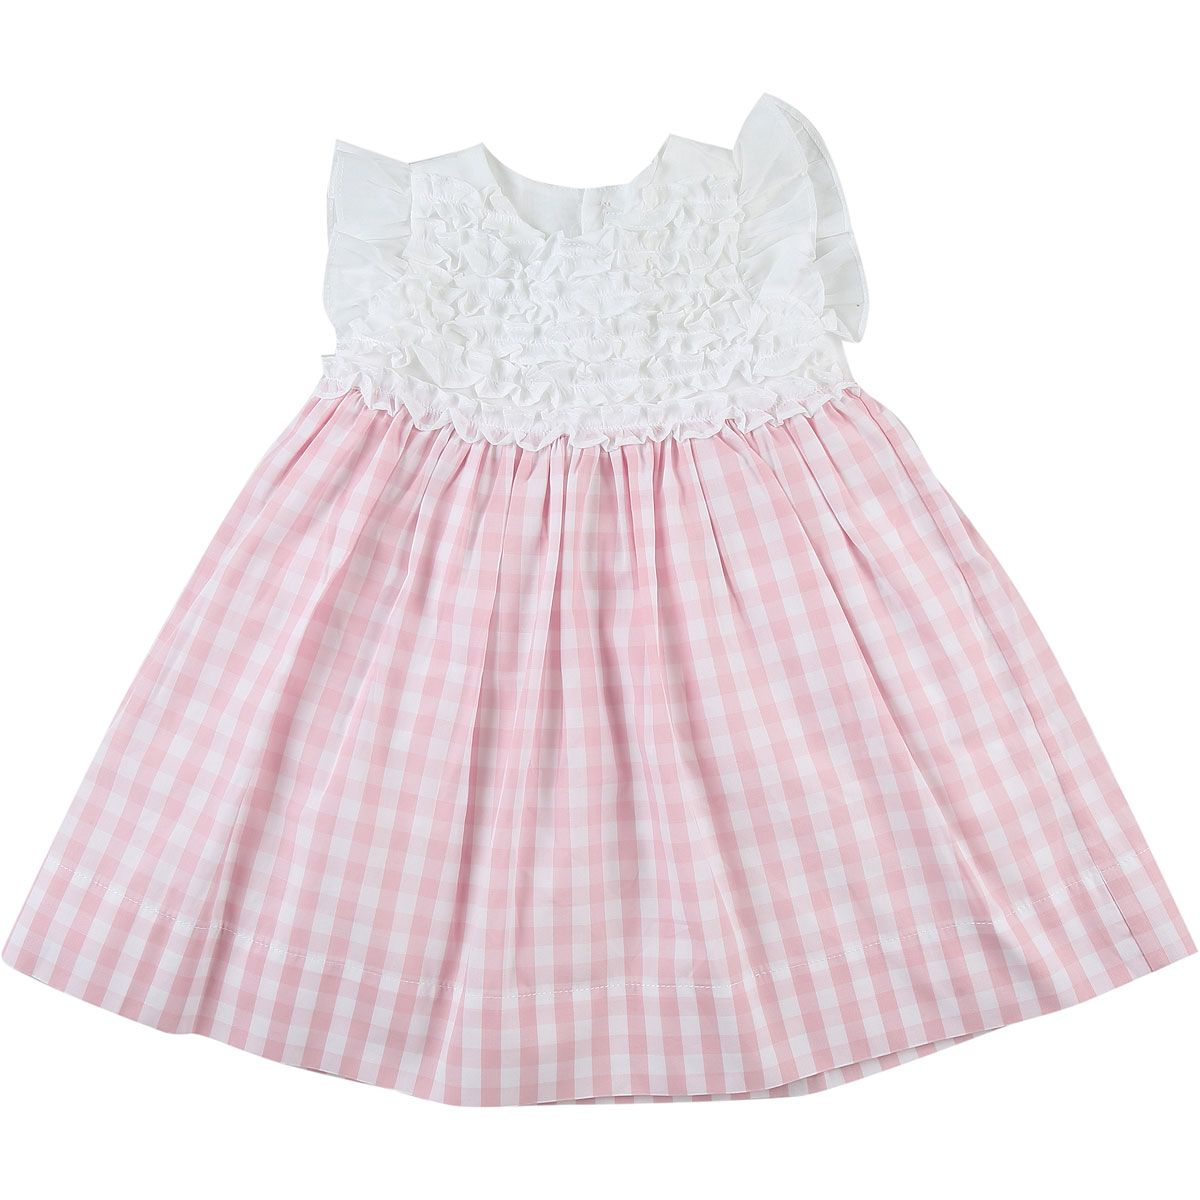 Il Gufo Baby Dress for Girls On Sale in Outlet, Pink, Cotton, 2019, 12M 2Y